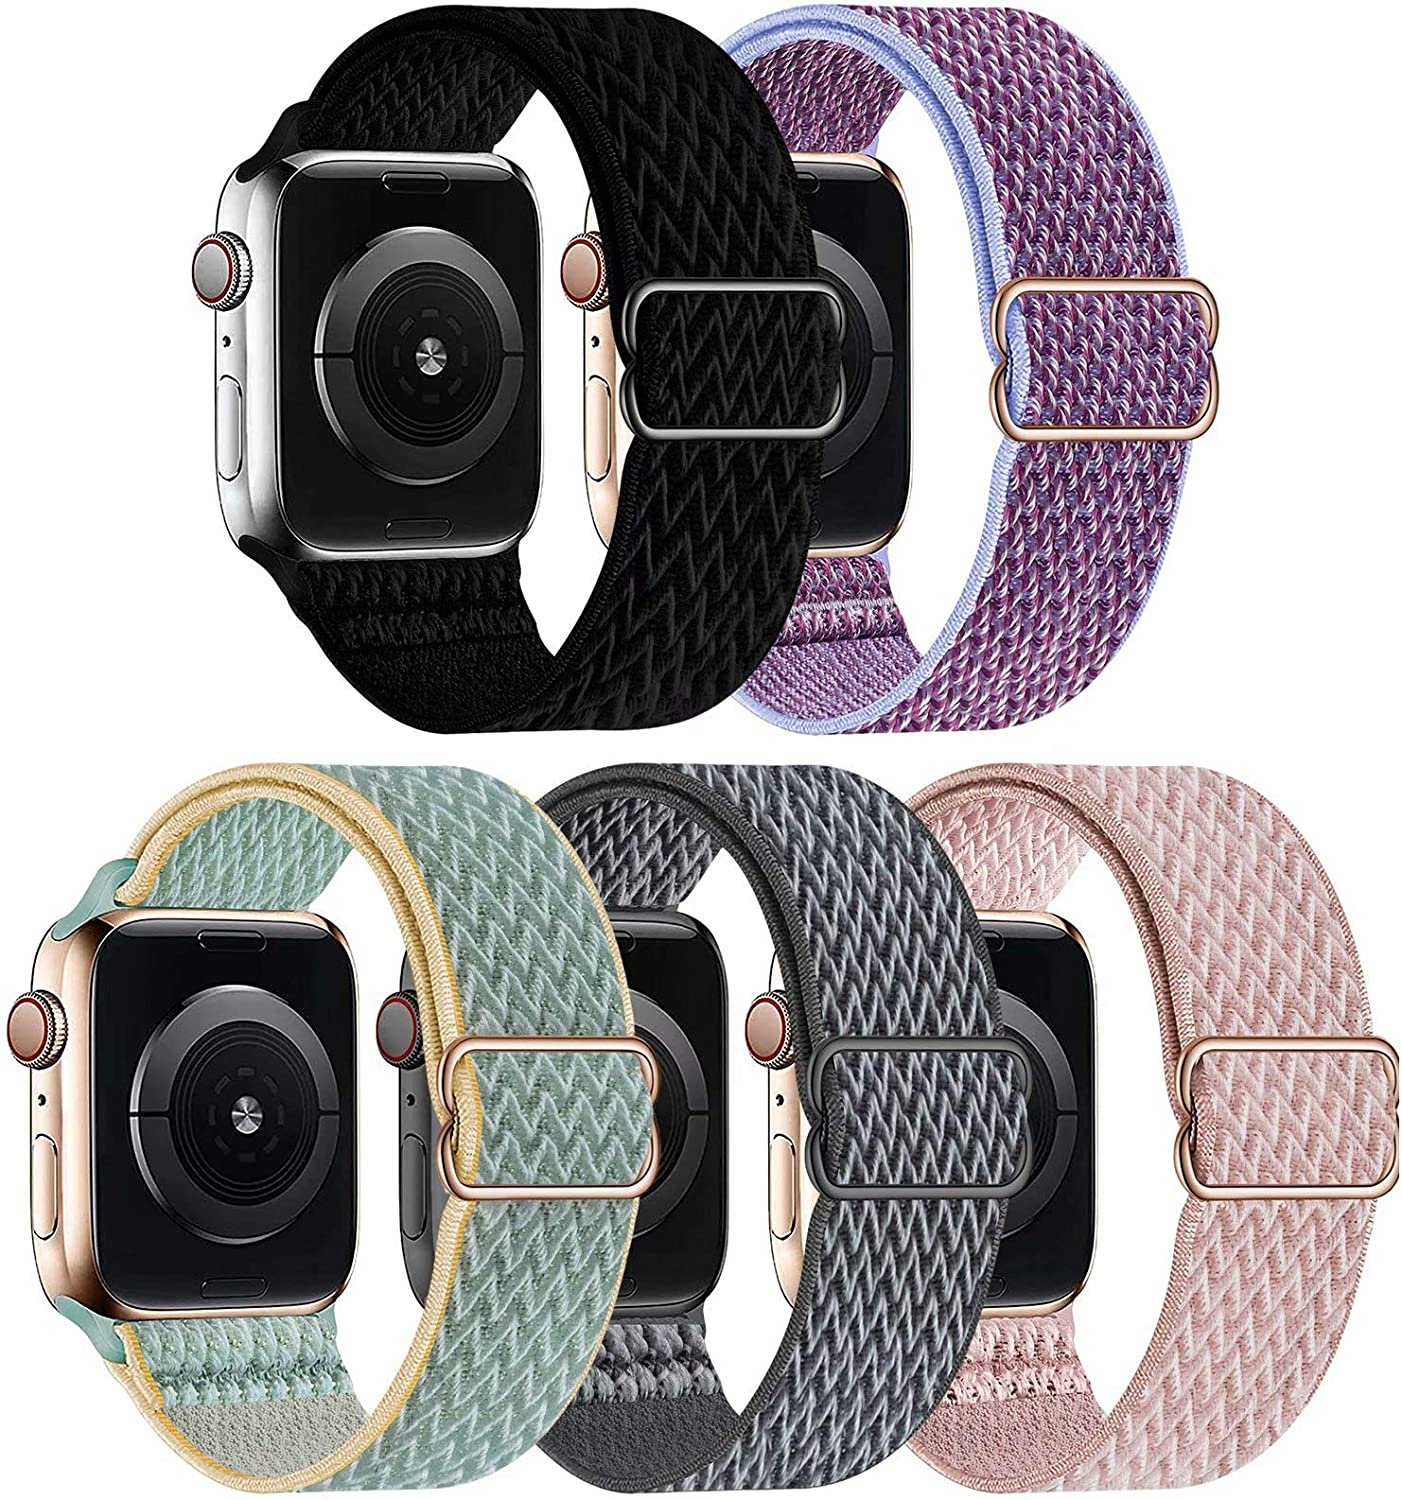 GBPOOT 5 Packs Nylon Stretch Band Compatible with Apple Watch Bands,Adjustable Soft Sport Breathable Loop for Iwatch Series 6/5/4/3/2/1/SE,Black/Lilac/Sunshine/Storm Gray/Rosepink,38/40mm